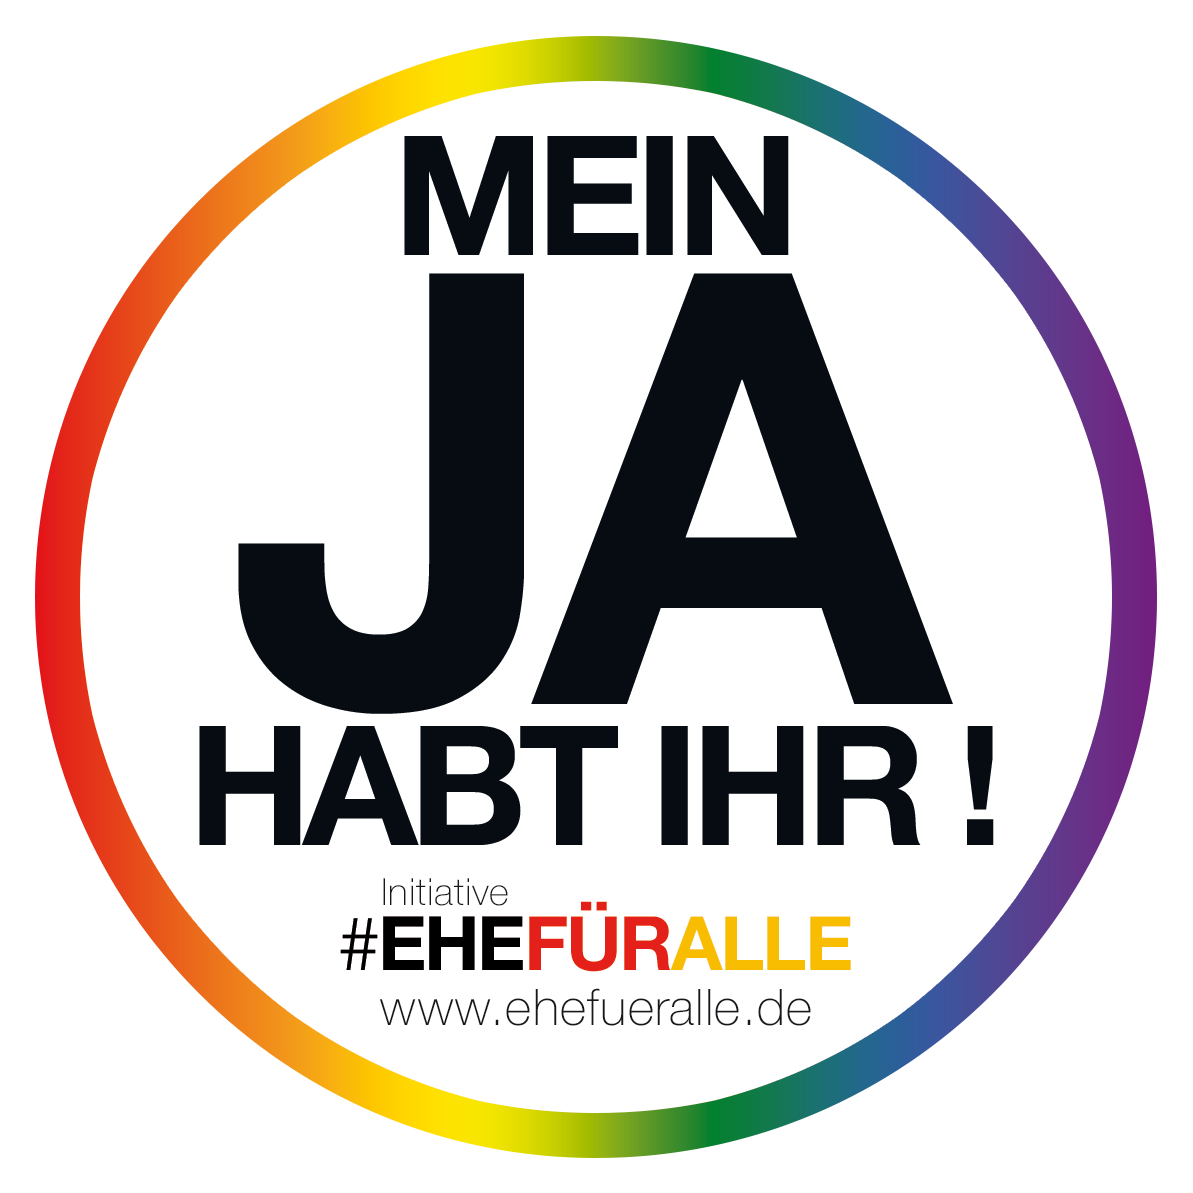 ehefueralle